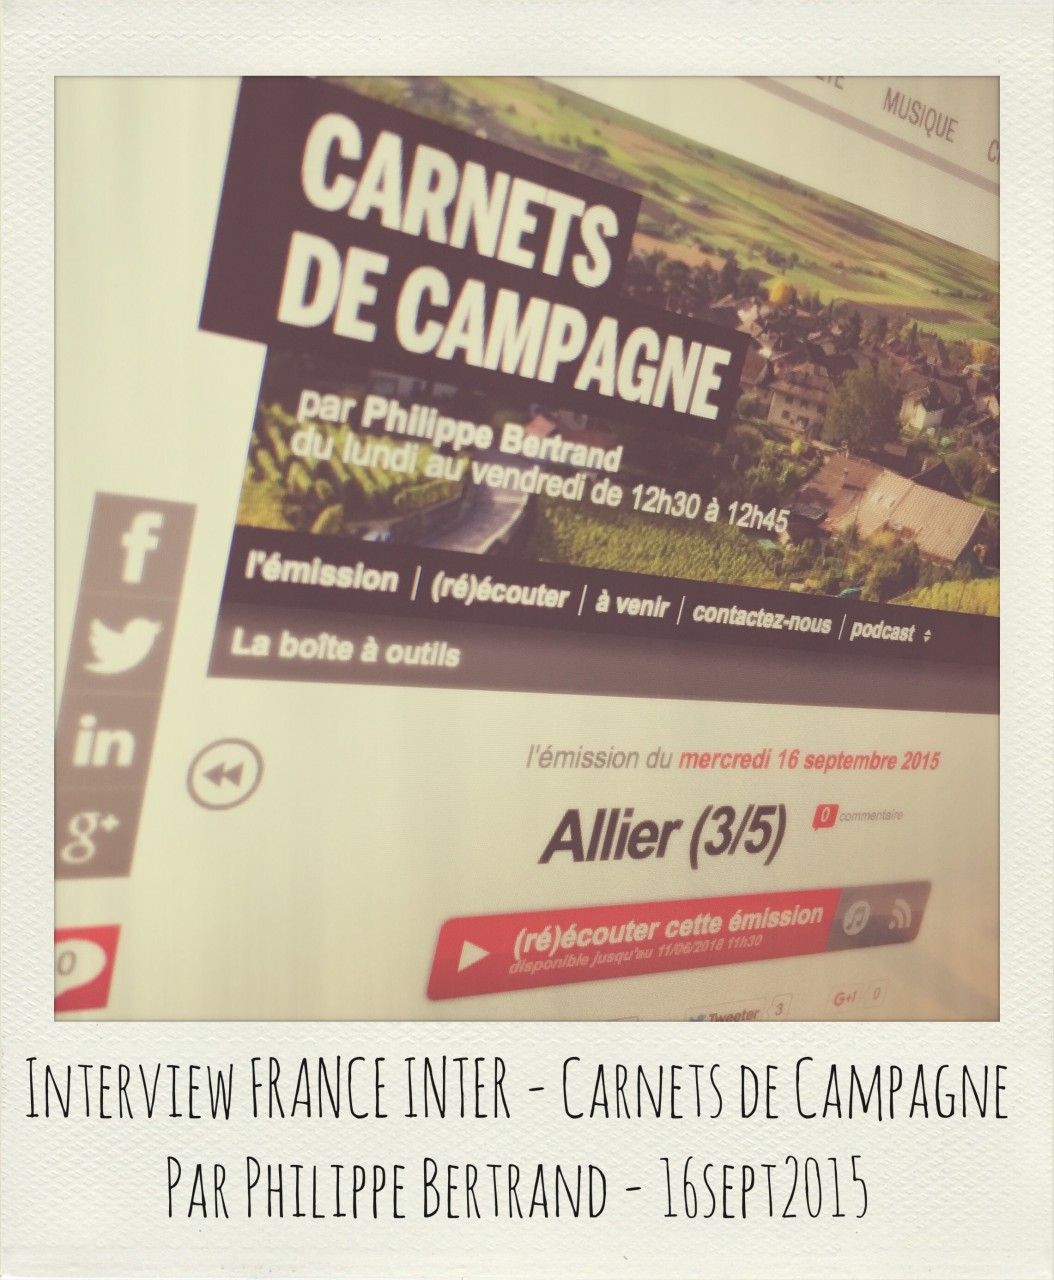 interview-france-inter-noemie-vieillard-photographe-auvergne